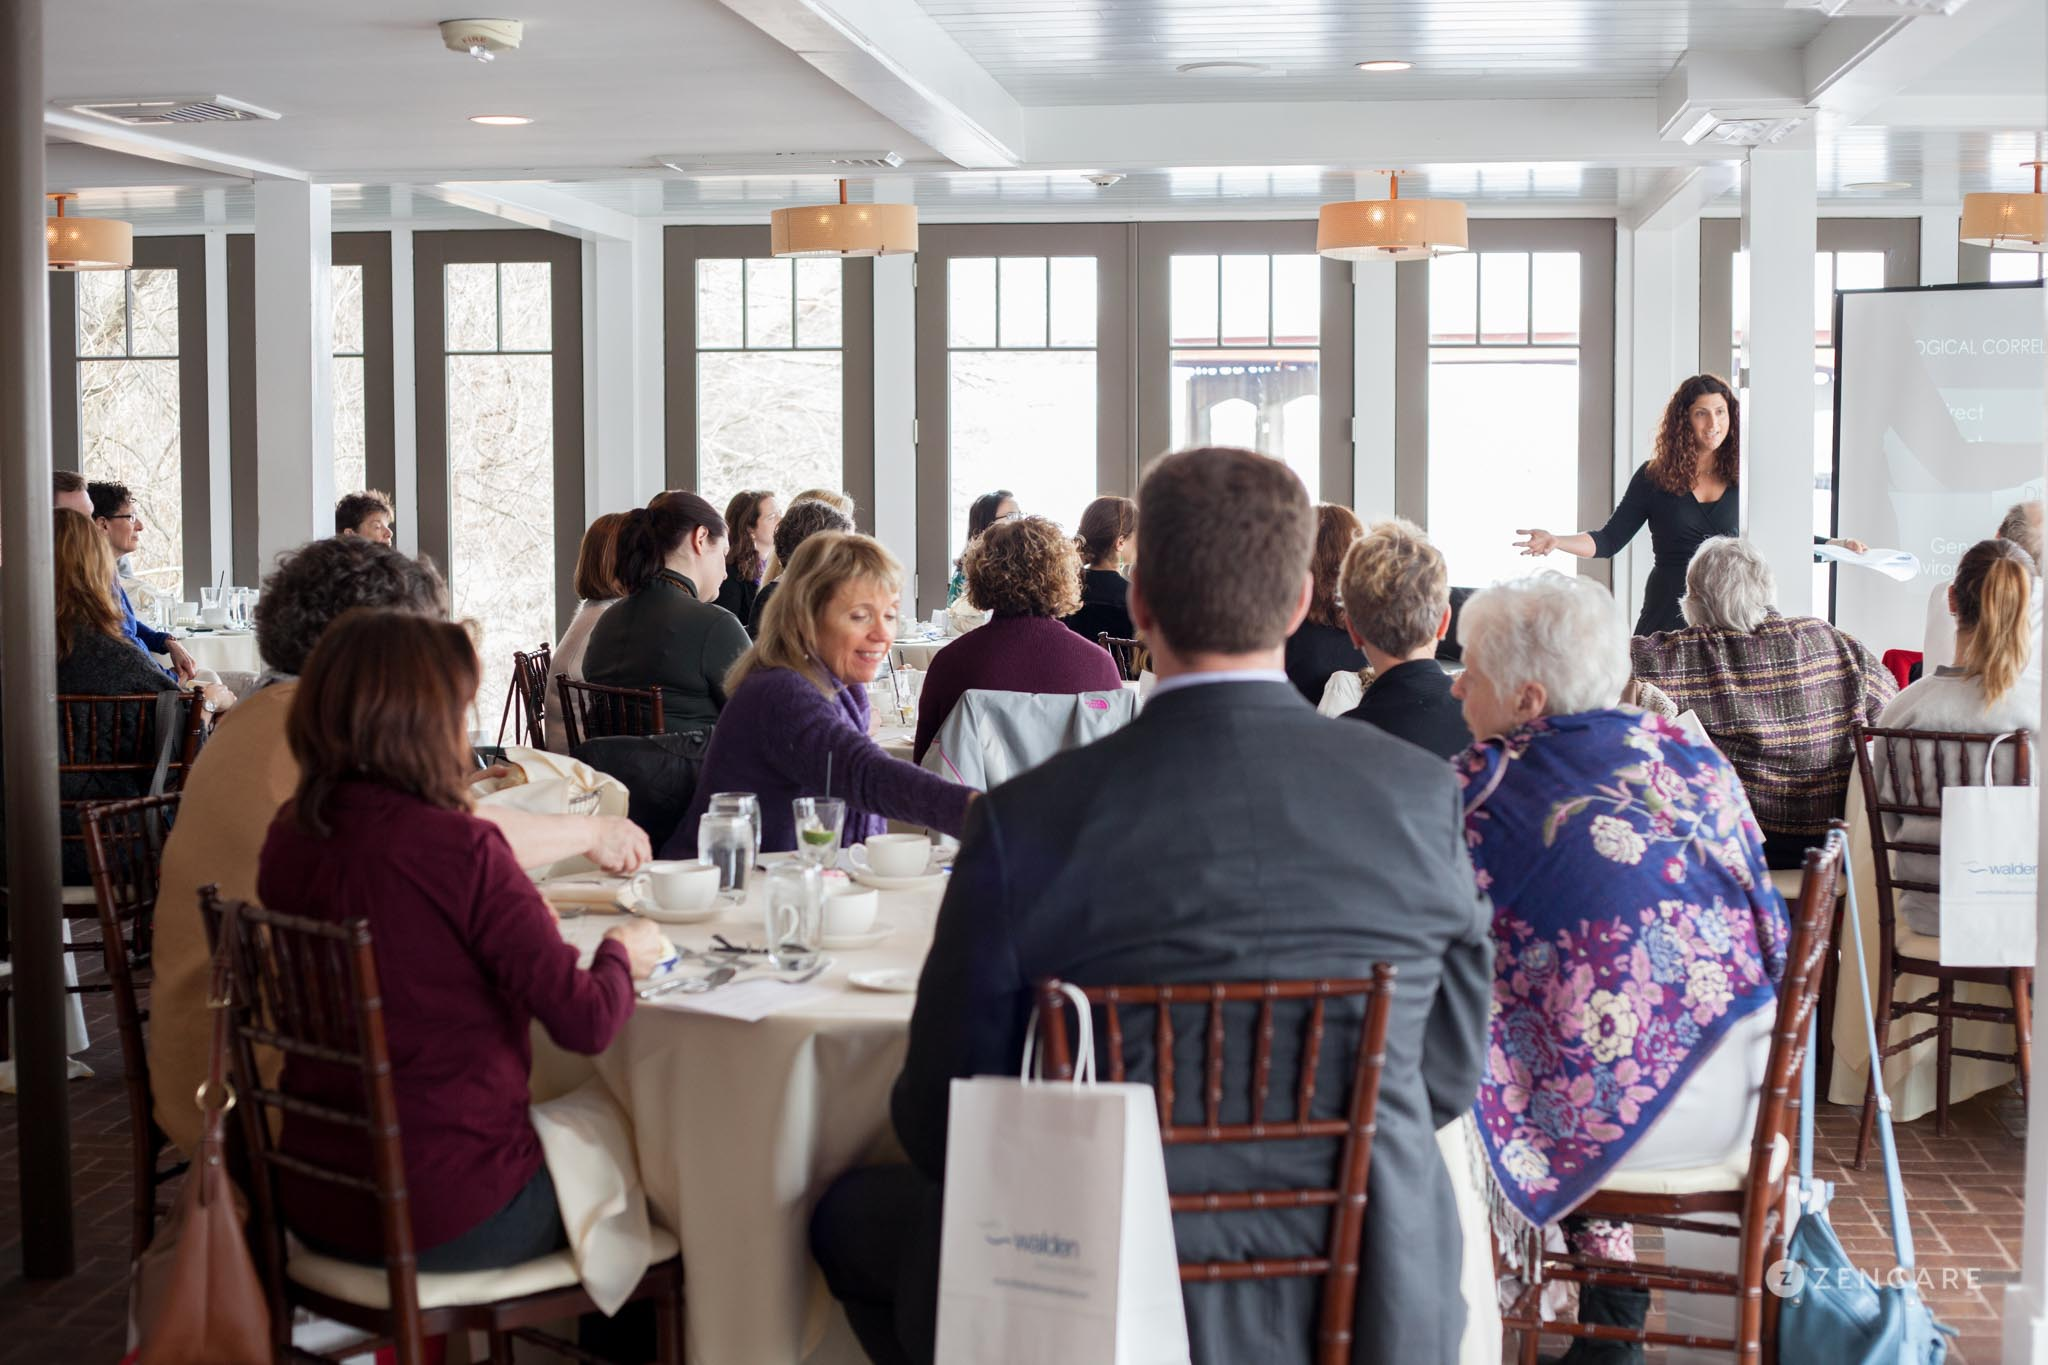 Tangled_Young adult eating disorder and addiction event_Walden_Granite_Zencare-8.jpg